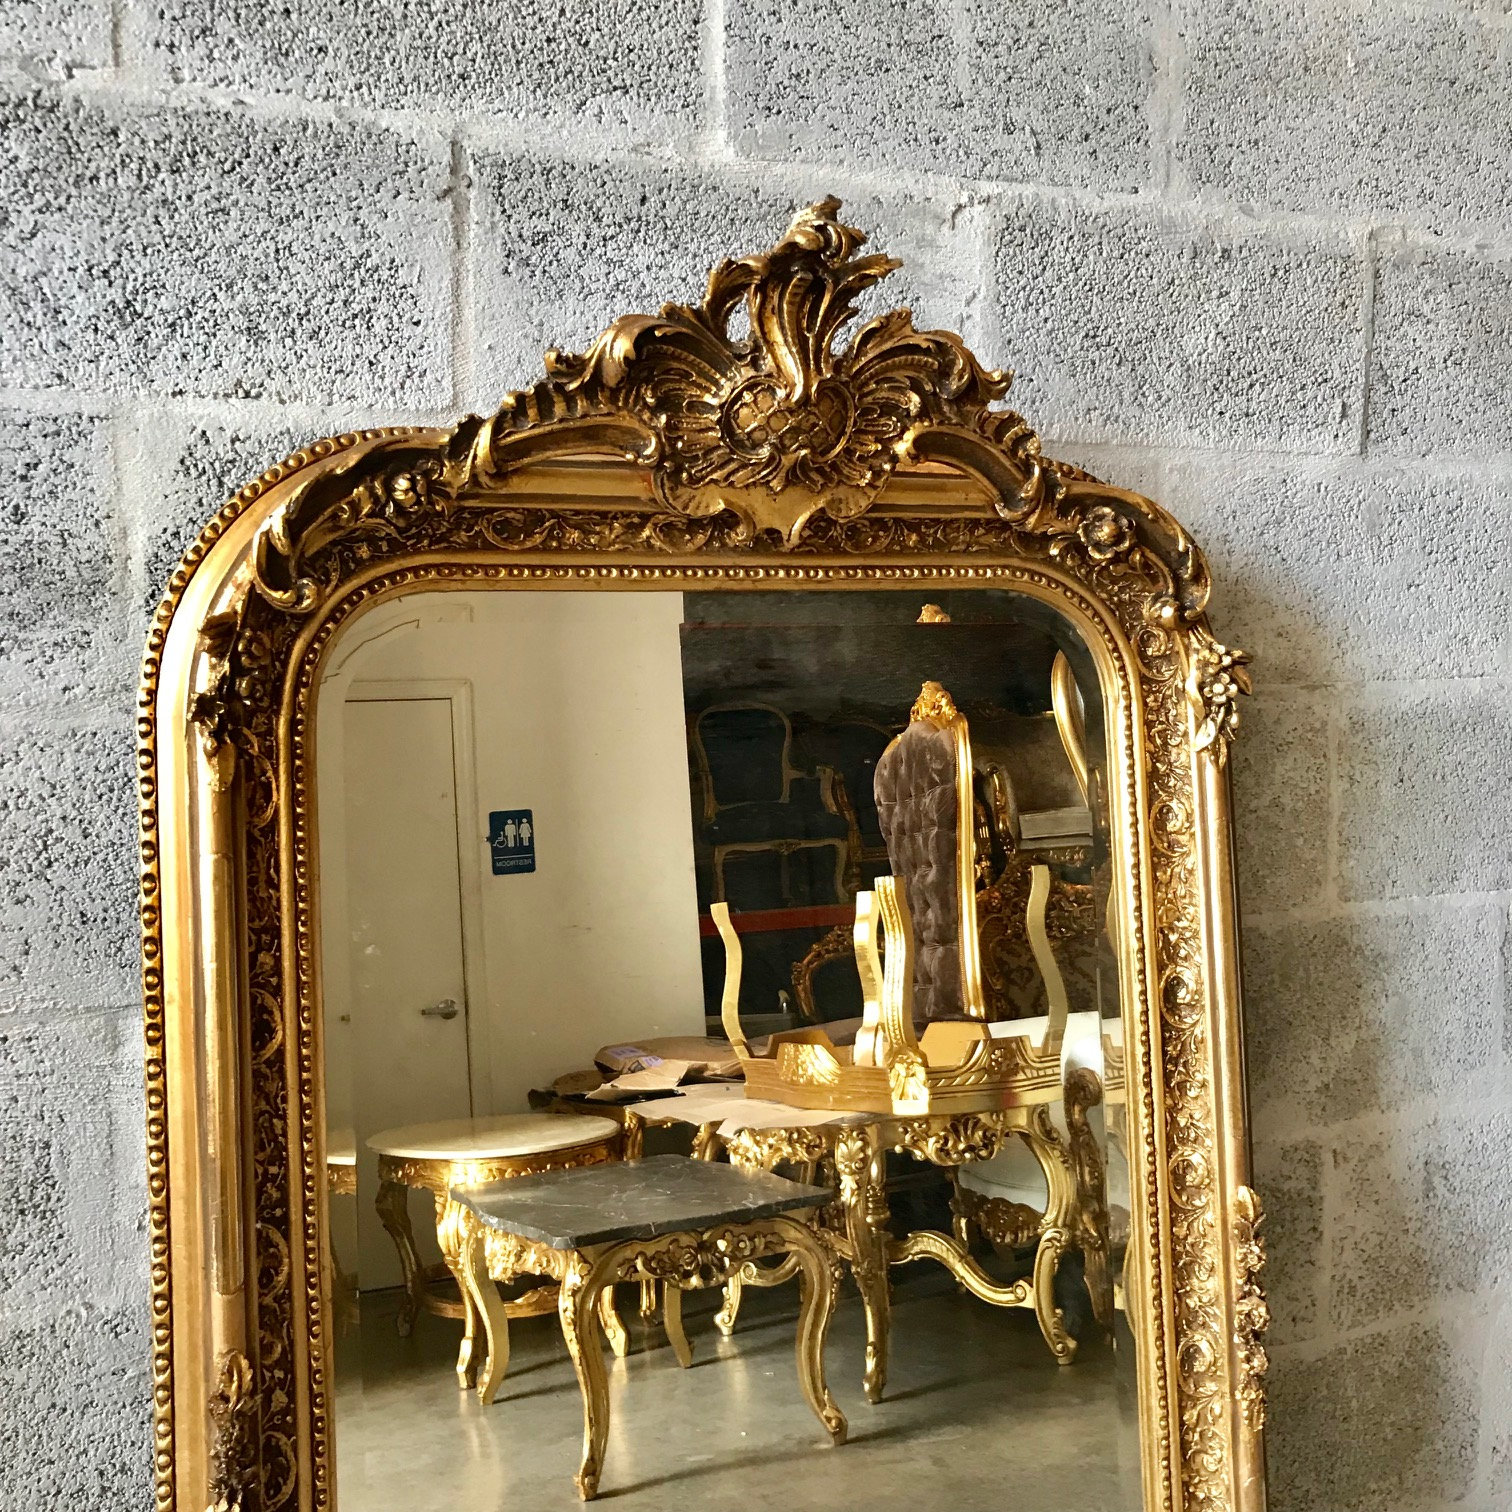 French Mirror French Baroque Mirror Rococo Mirror Antique ...